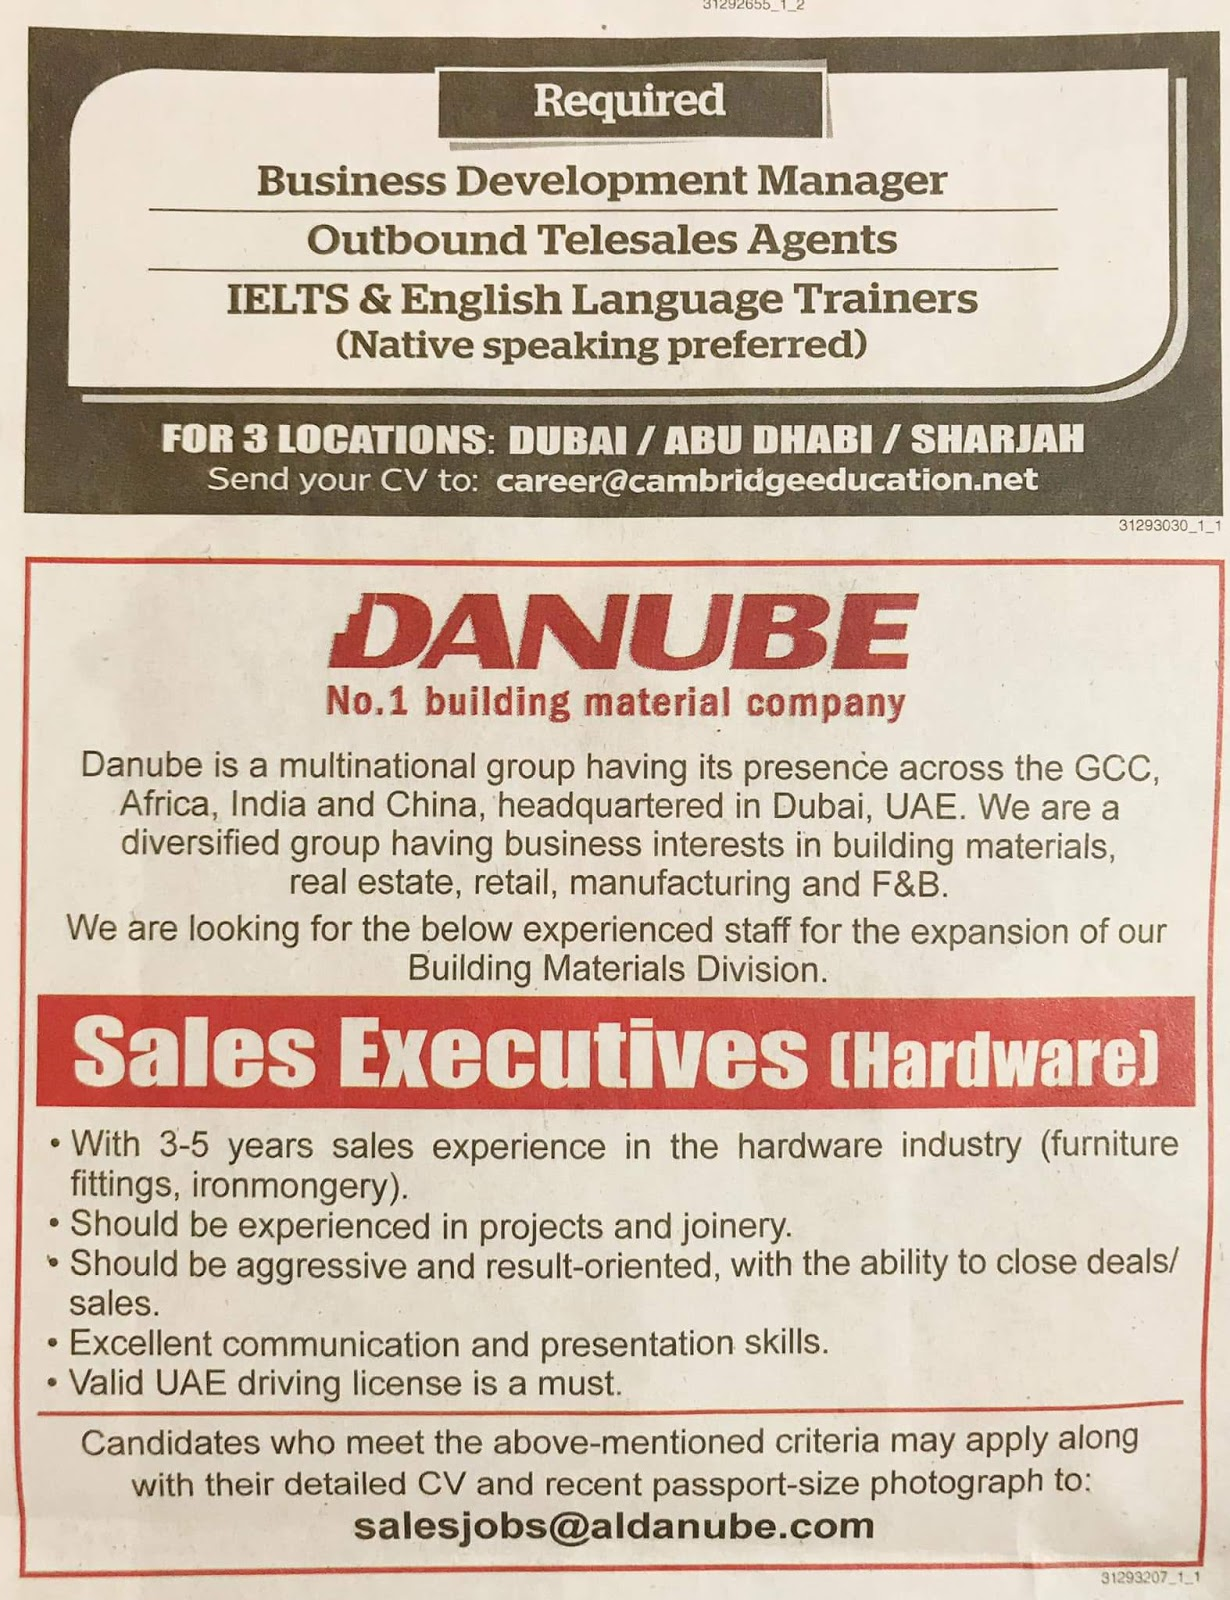 Required SALES EXECUTIVE FOR UAE JOBS LOCAL HIRING KHALEEJ TIMES-UAE